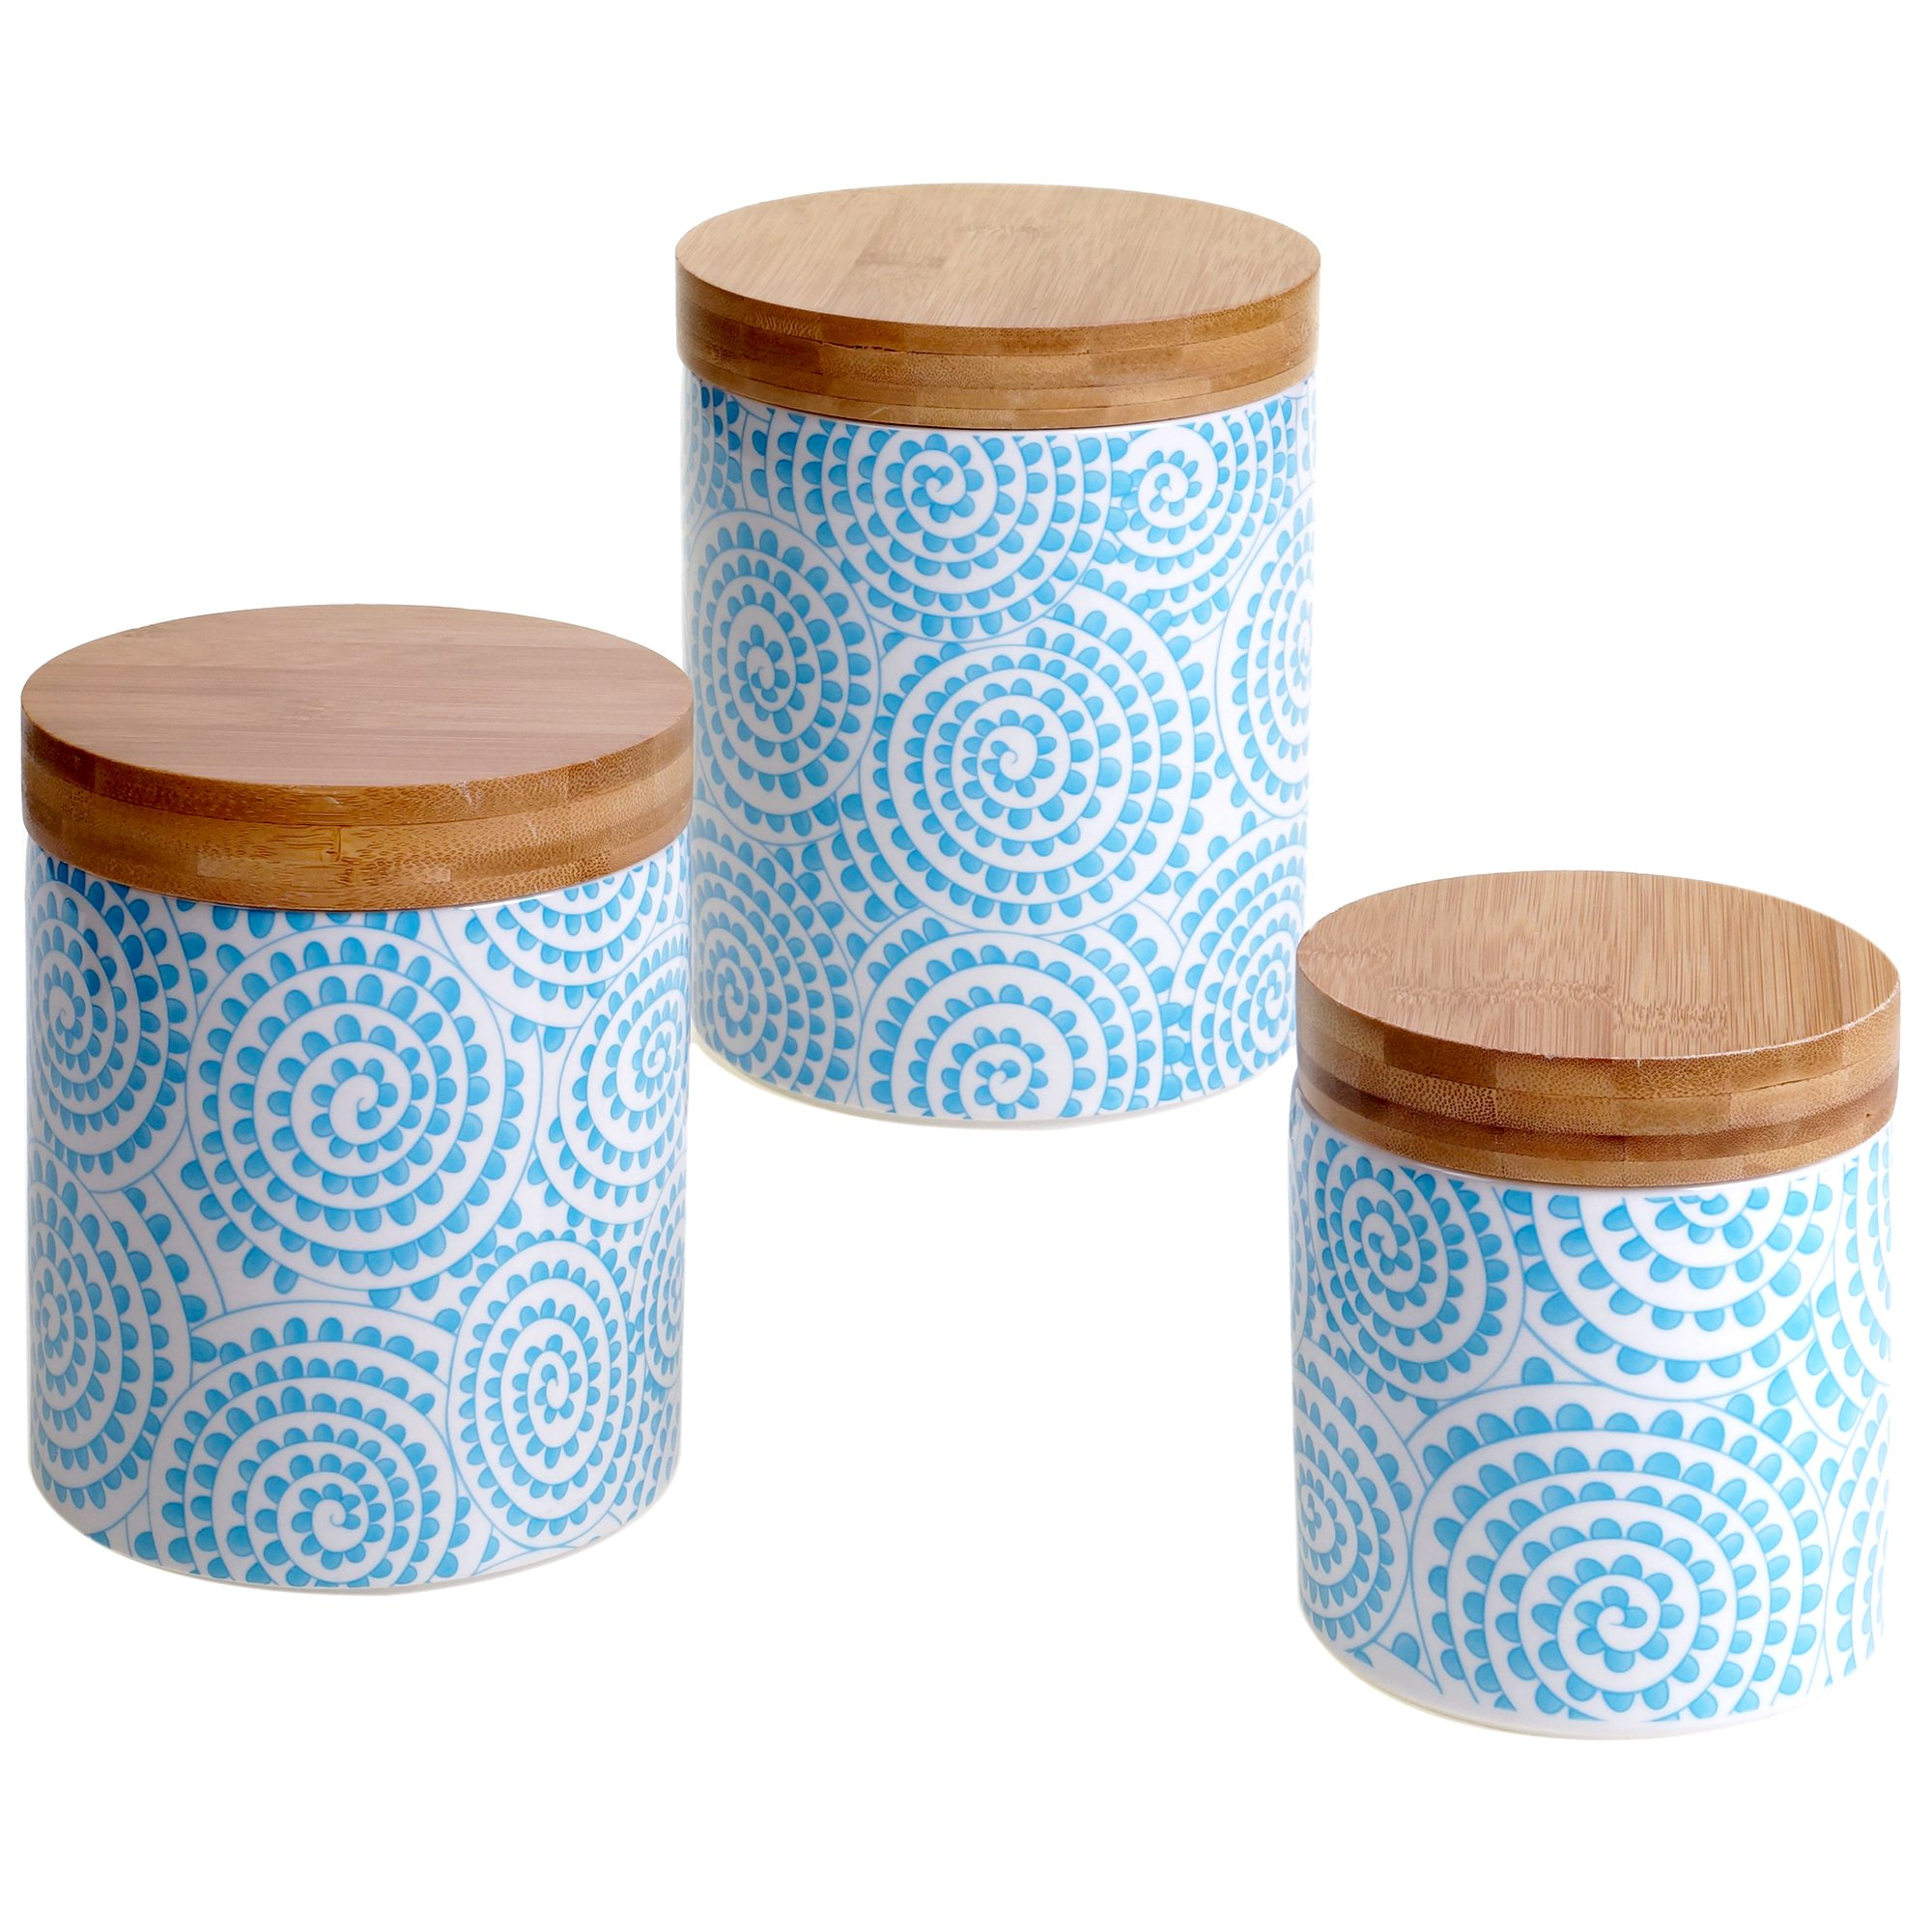 Certified International 3 Piece Chelsea Aqua Swirl Canister Set with Bamboo Lids, Multicolor